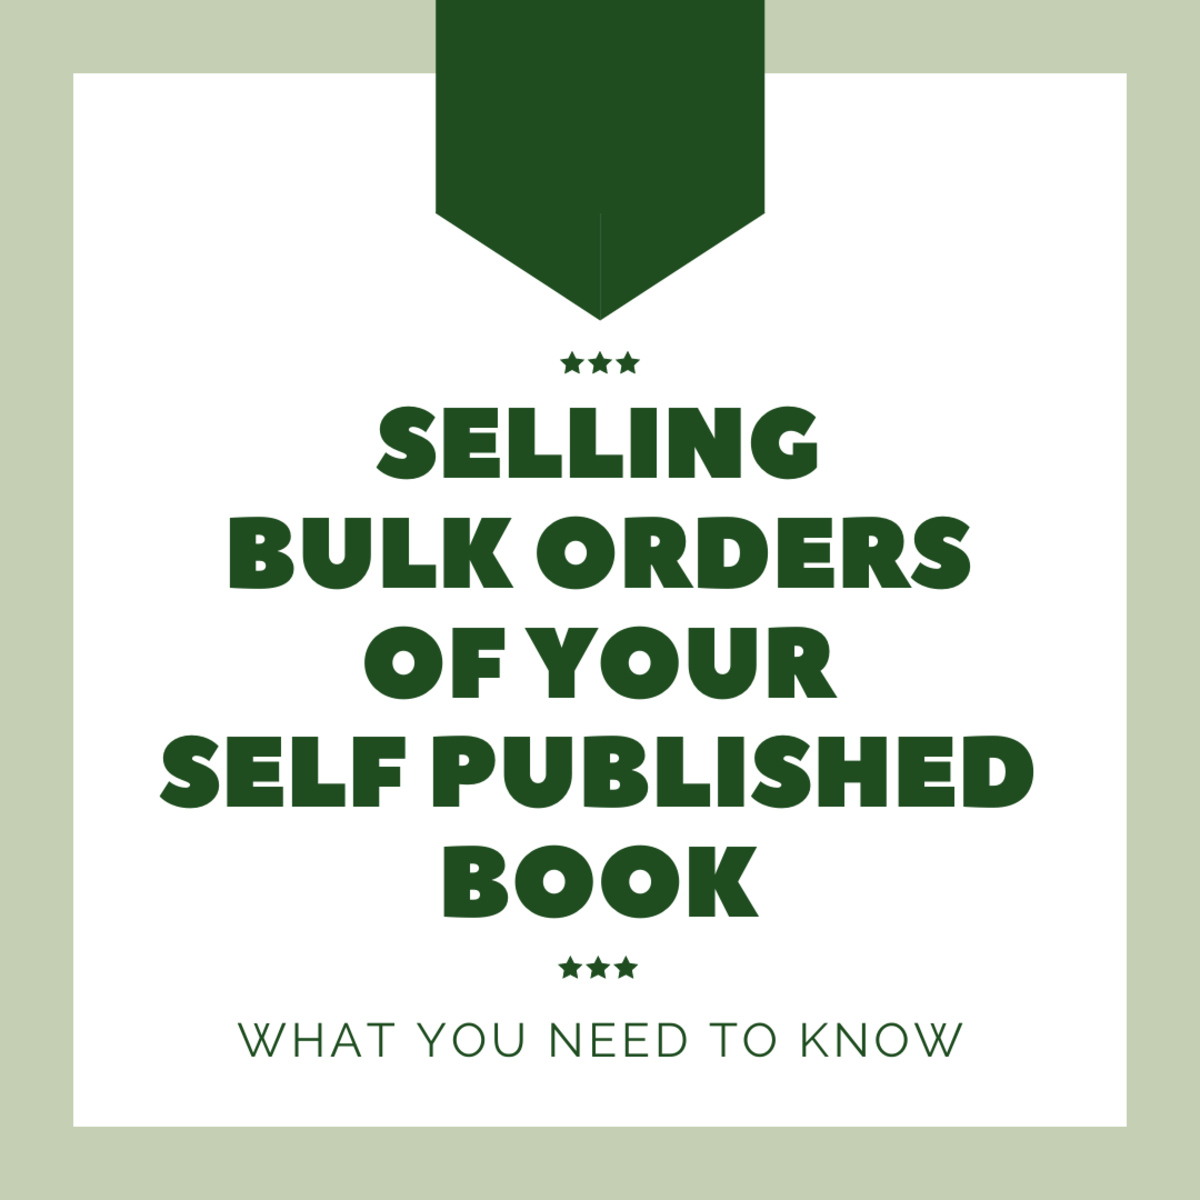 Selling Bulk Orders of Your Self Published Books: What You Need to Know